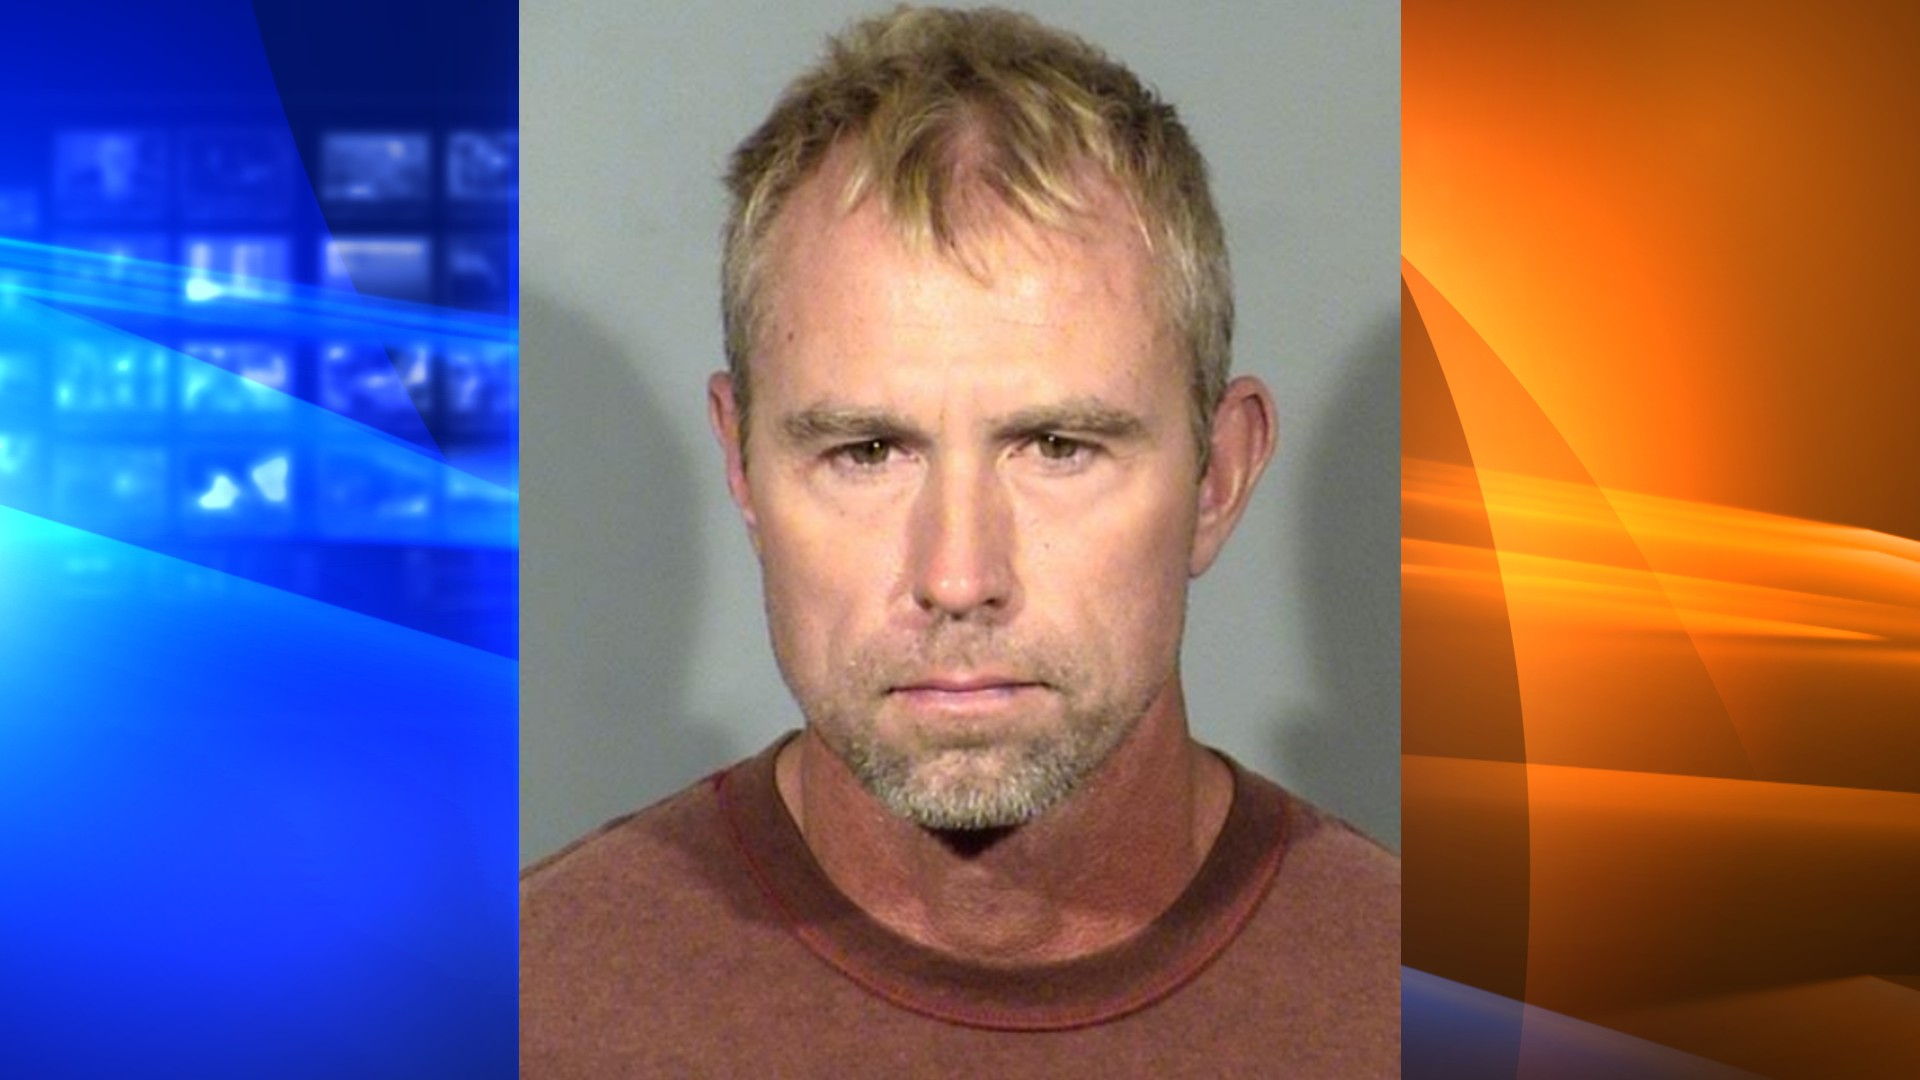 Terry Gray, 52, is seen in a booking photo released by the Las Vegas Metropolitan Police Department on July 11, 2020.